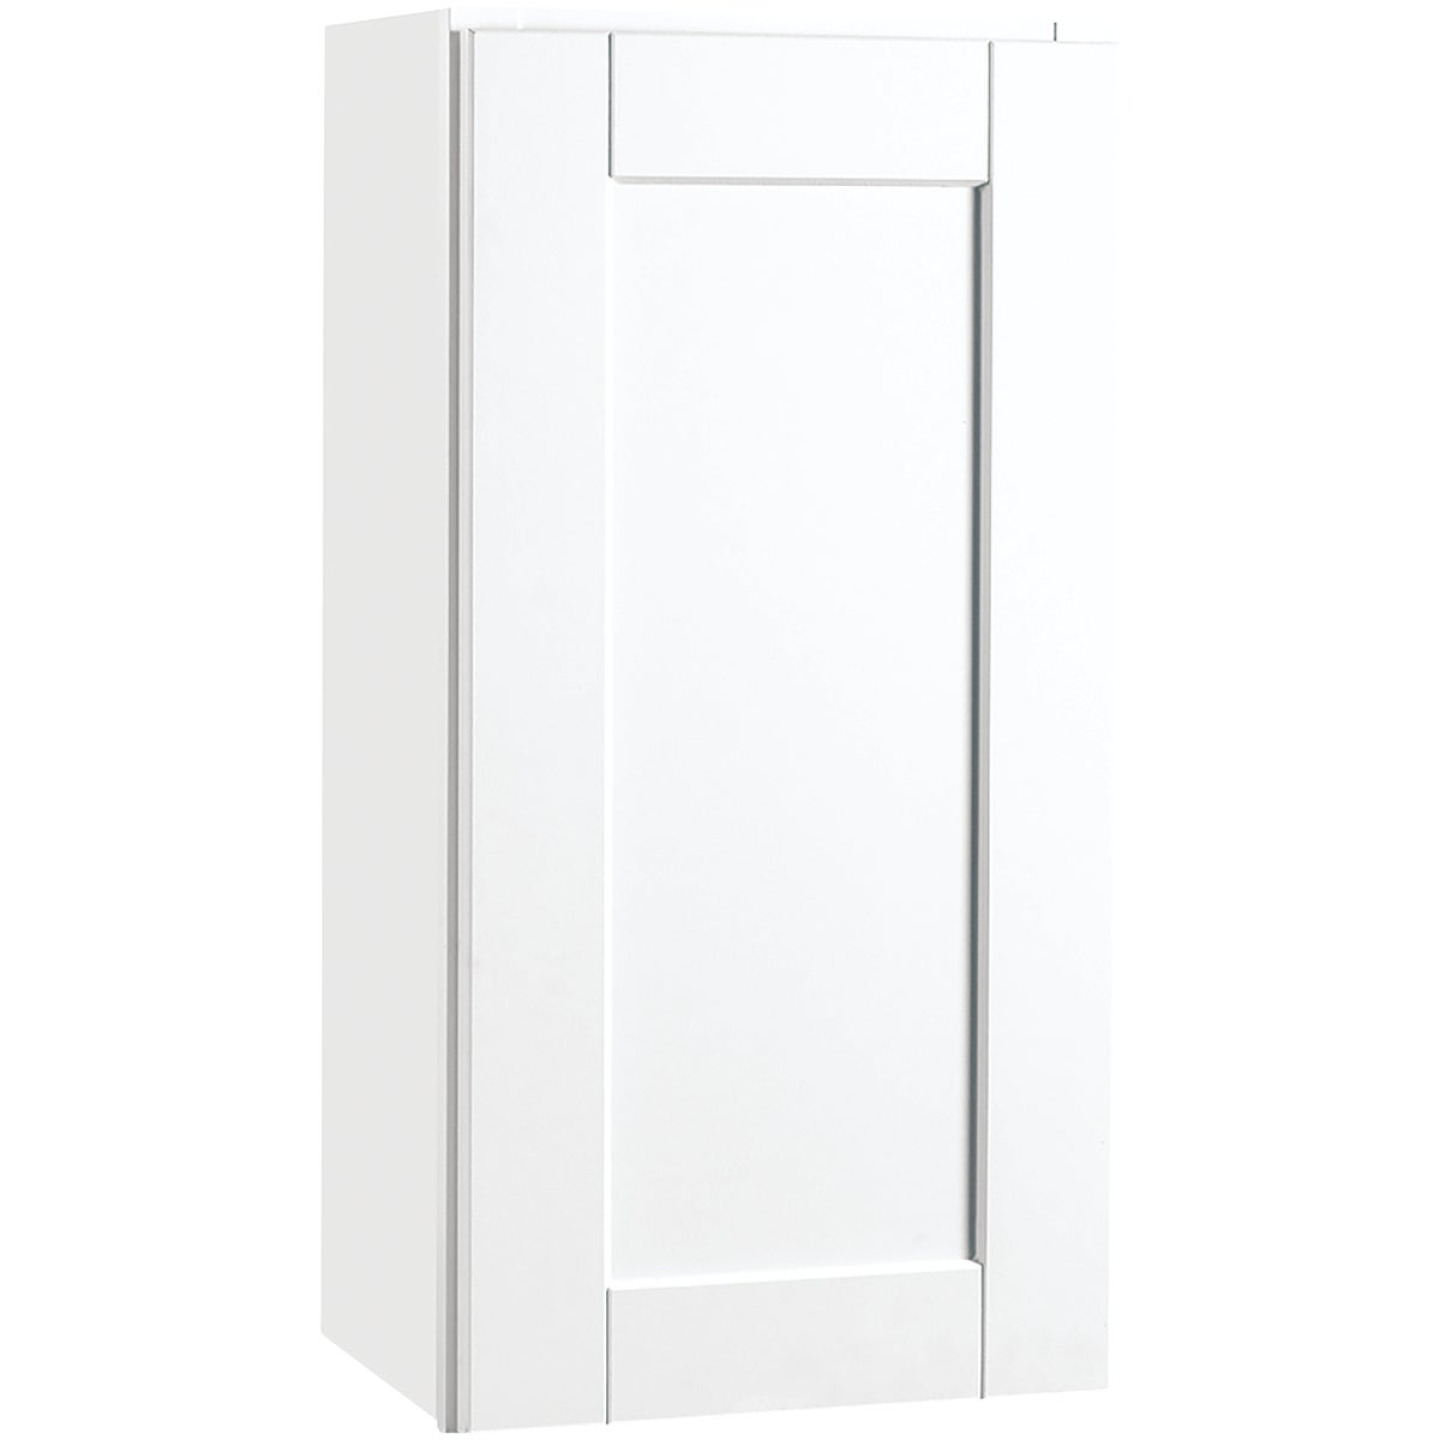 Continental Cabinets Andover Shaker 15 In. W x 30 In. H x 12 In. D White Thermofoil Wall Kitchen Cabinet Image 1